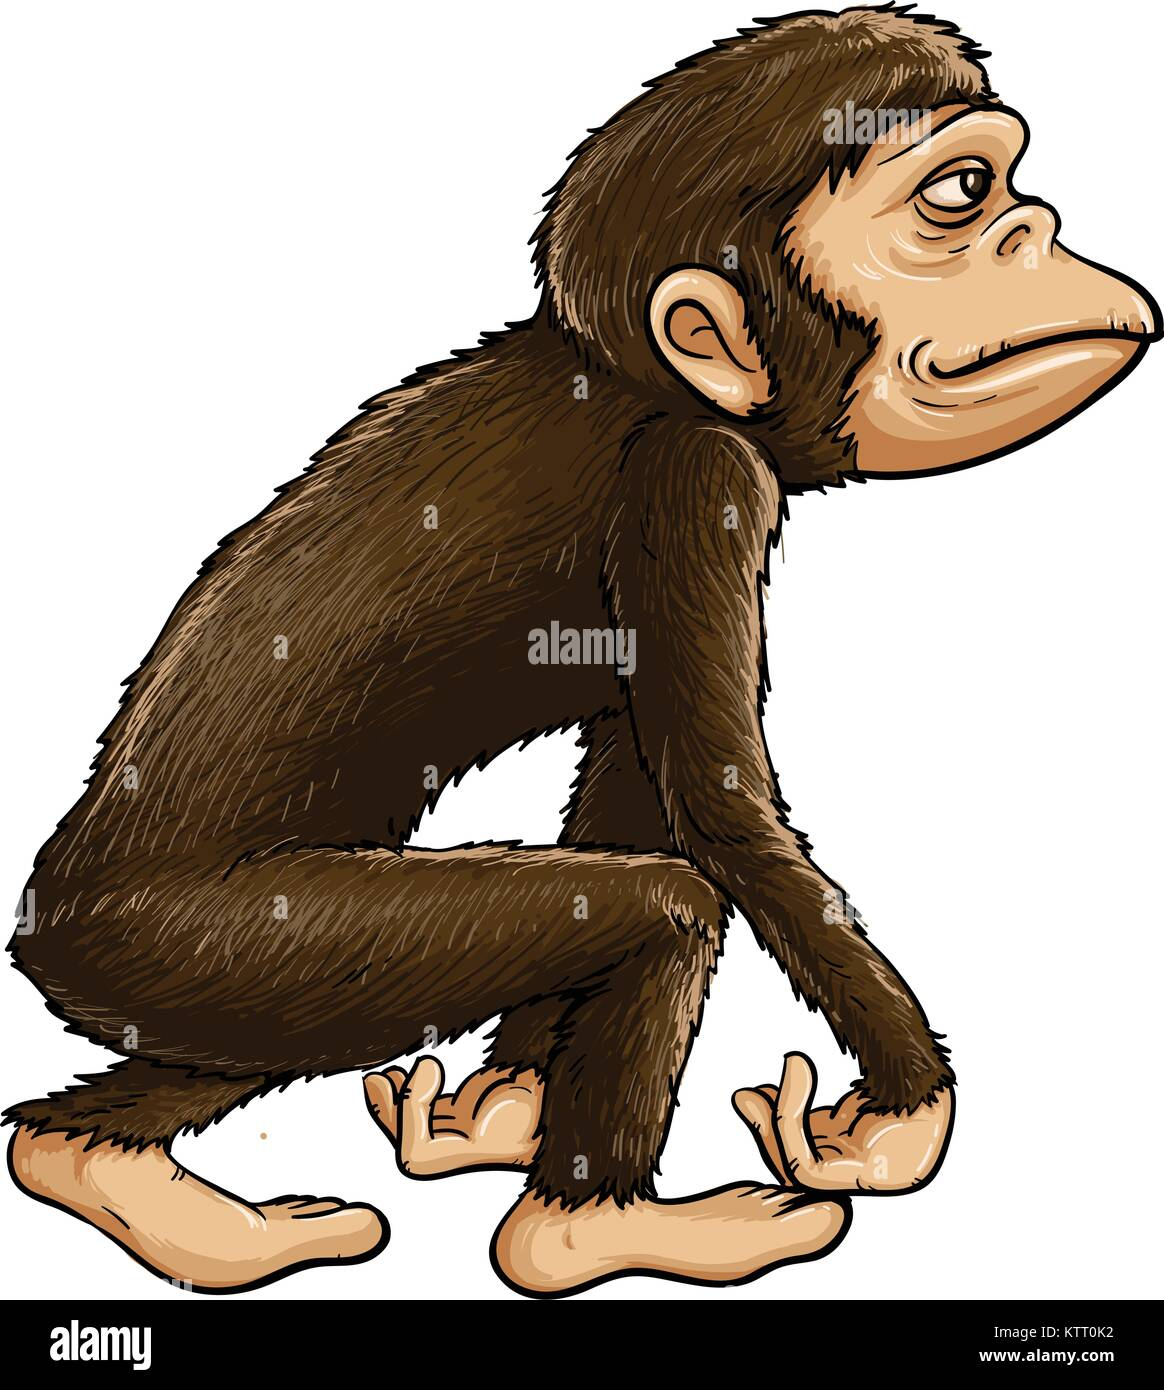 Evolution Of Man From Ape High Resolution Stock